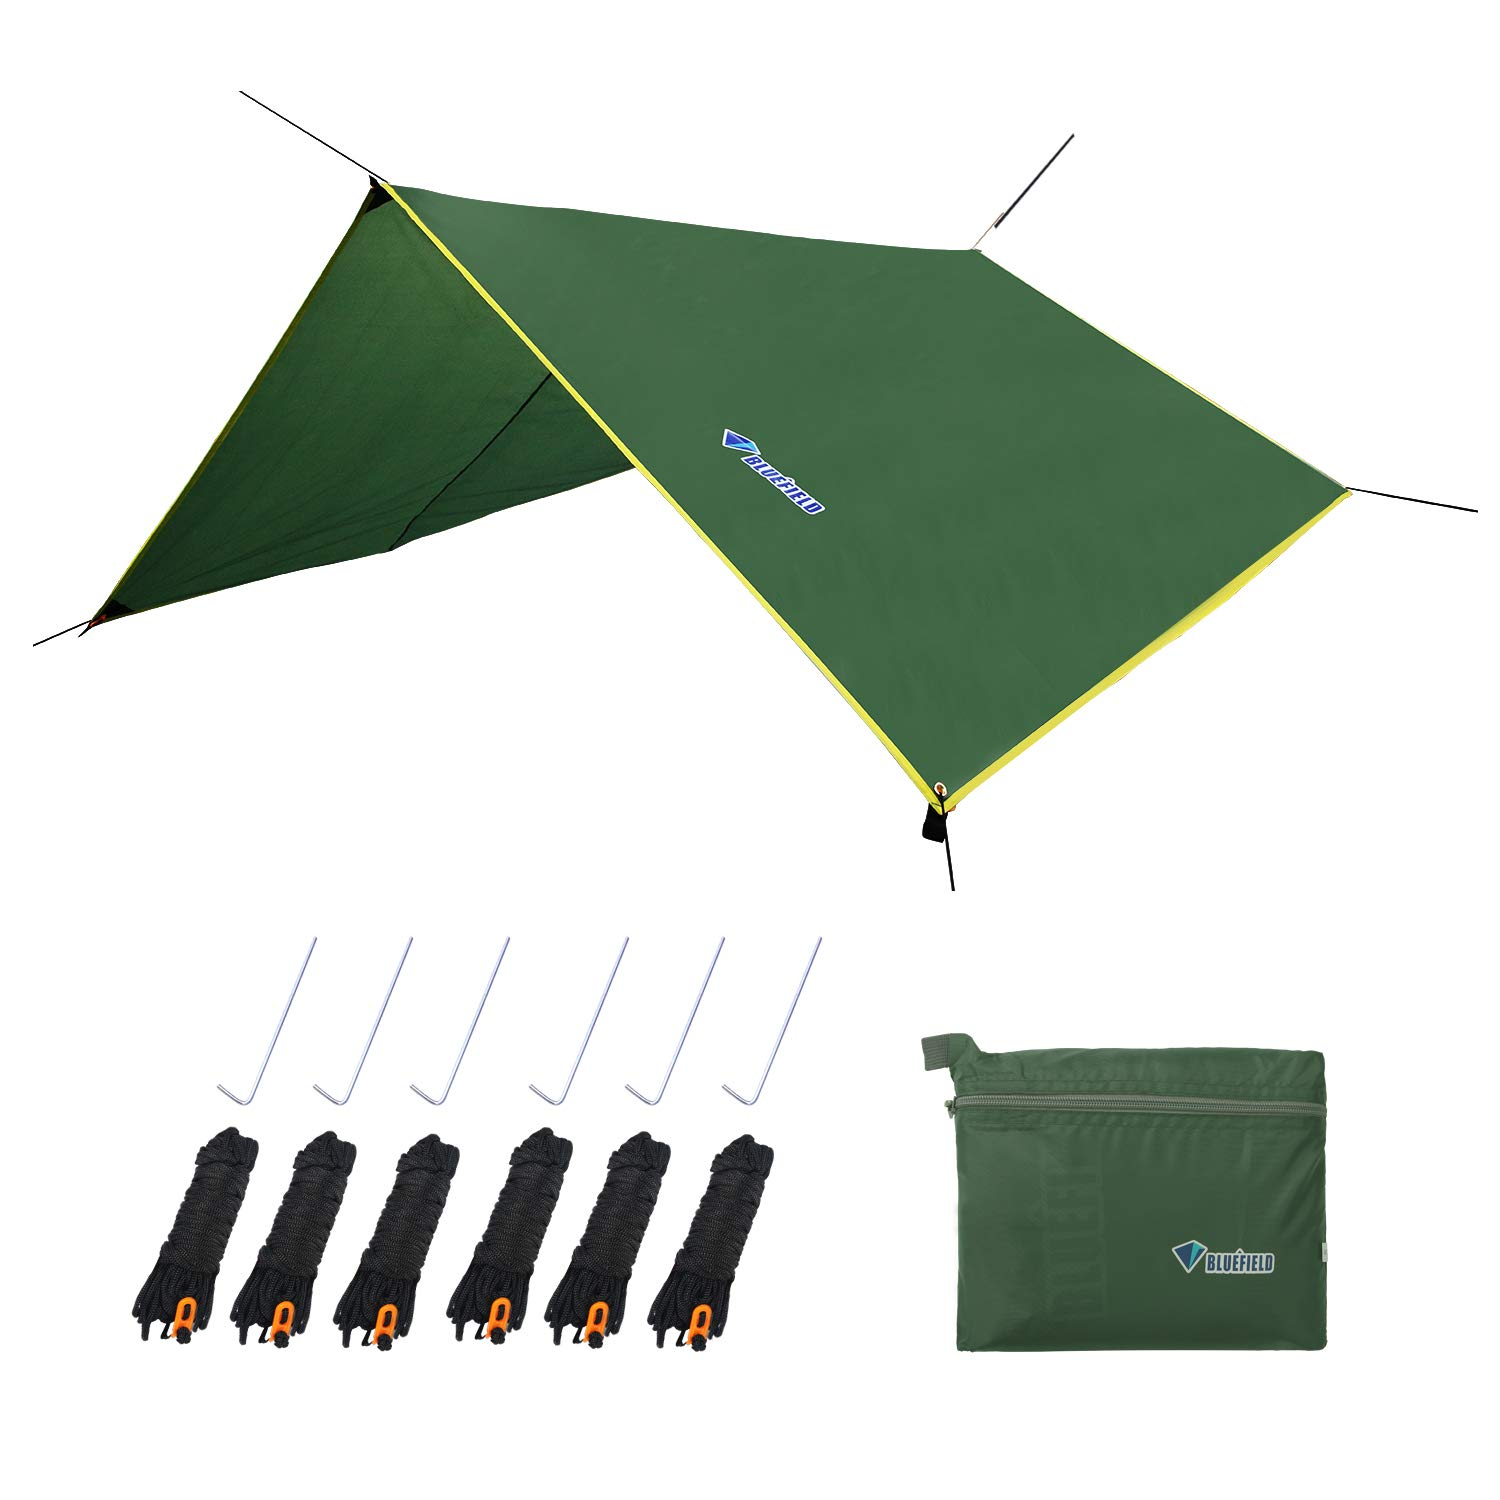 LLY Camping Tarp, Waterproof Picnic Mat, 4 in1 Multifunctional Tent Footprint for Camping, Hiking Survival Gear, Lightweight and Compact(71'' x 86'' Green) by LLY